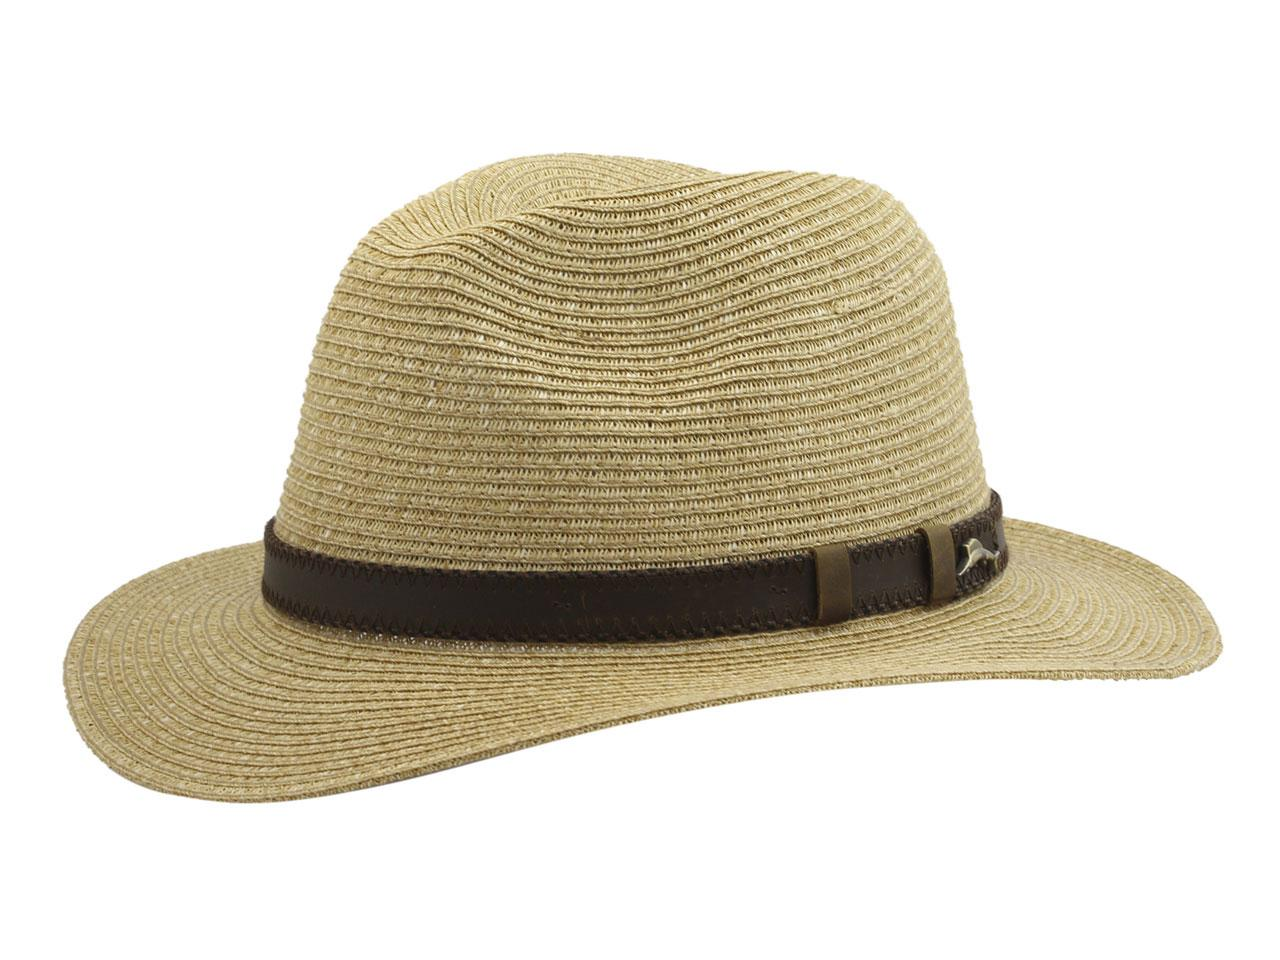 6d4c1817f3d75 Tommy Bahama Men s Fine Braid Toyo Safari Hat by Tommy Bahama. Touch to zoom